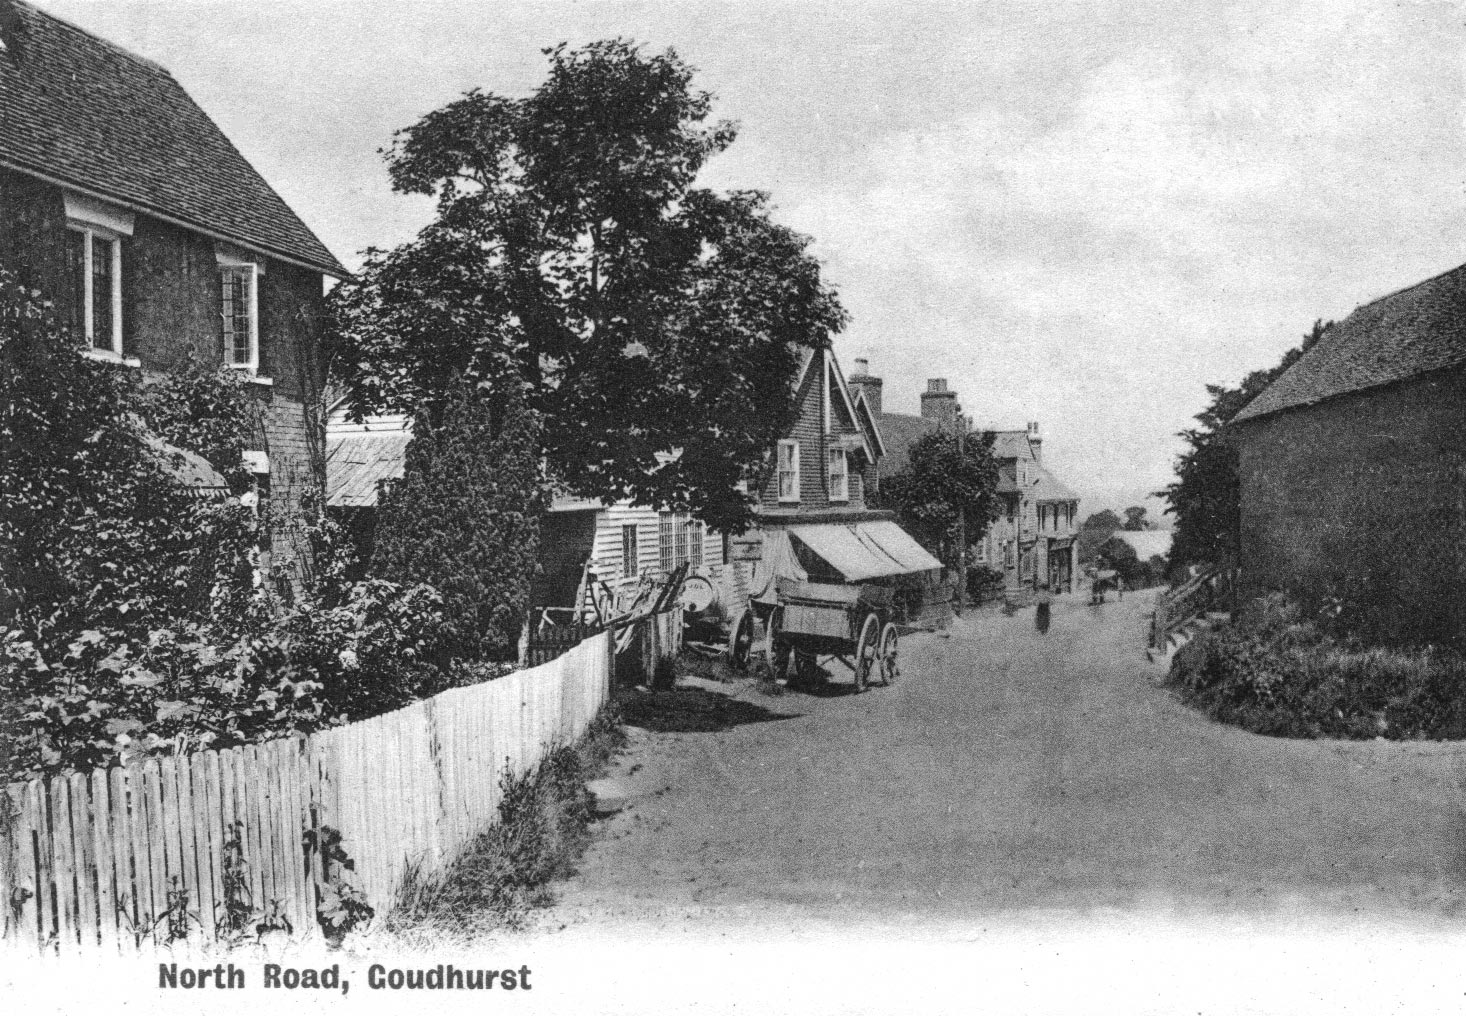 North Road, Goudhurst